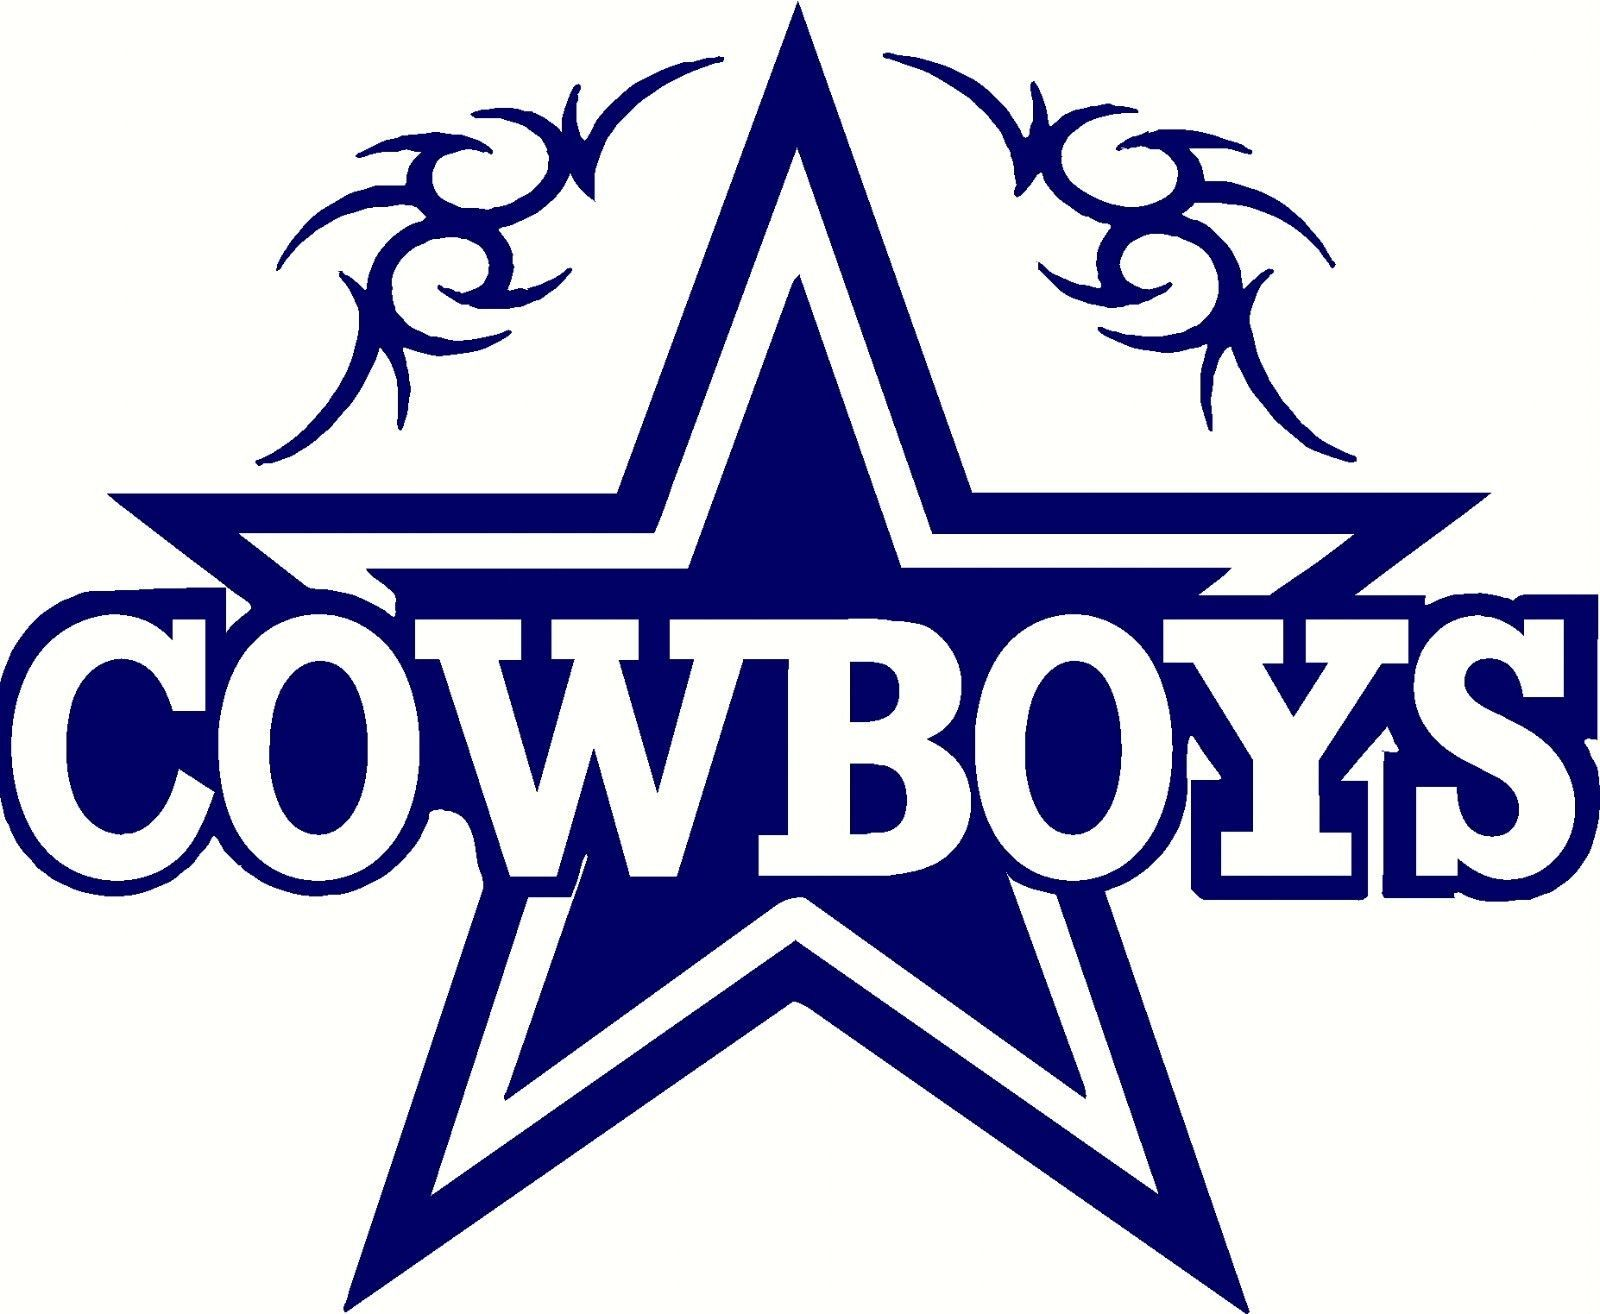 dallas cowboys clipart at getdrawings com free for personal use rh getdrawings com cowboy logistics llc cowboys logos images